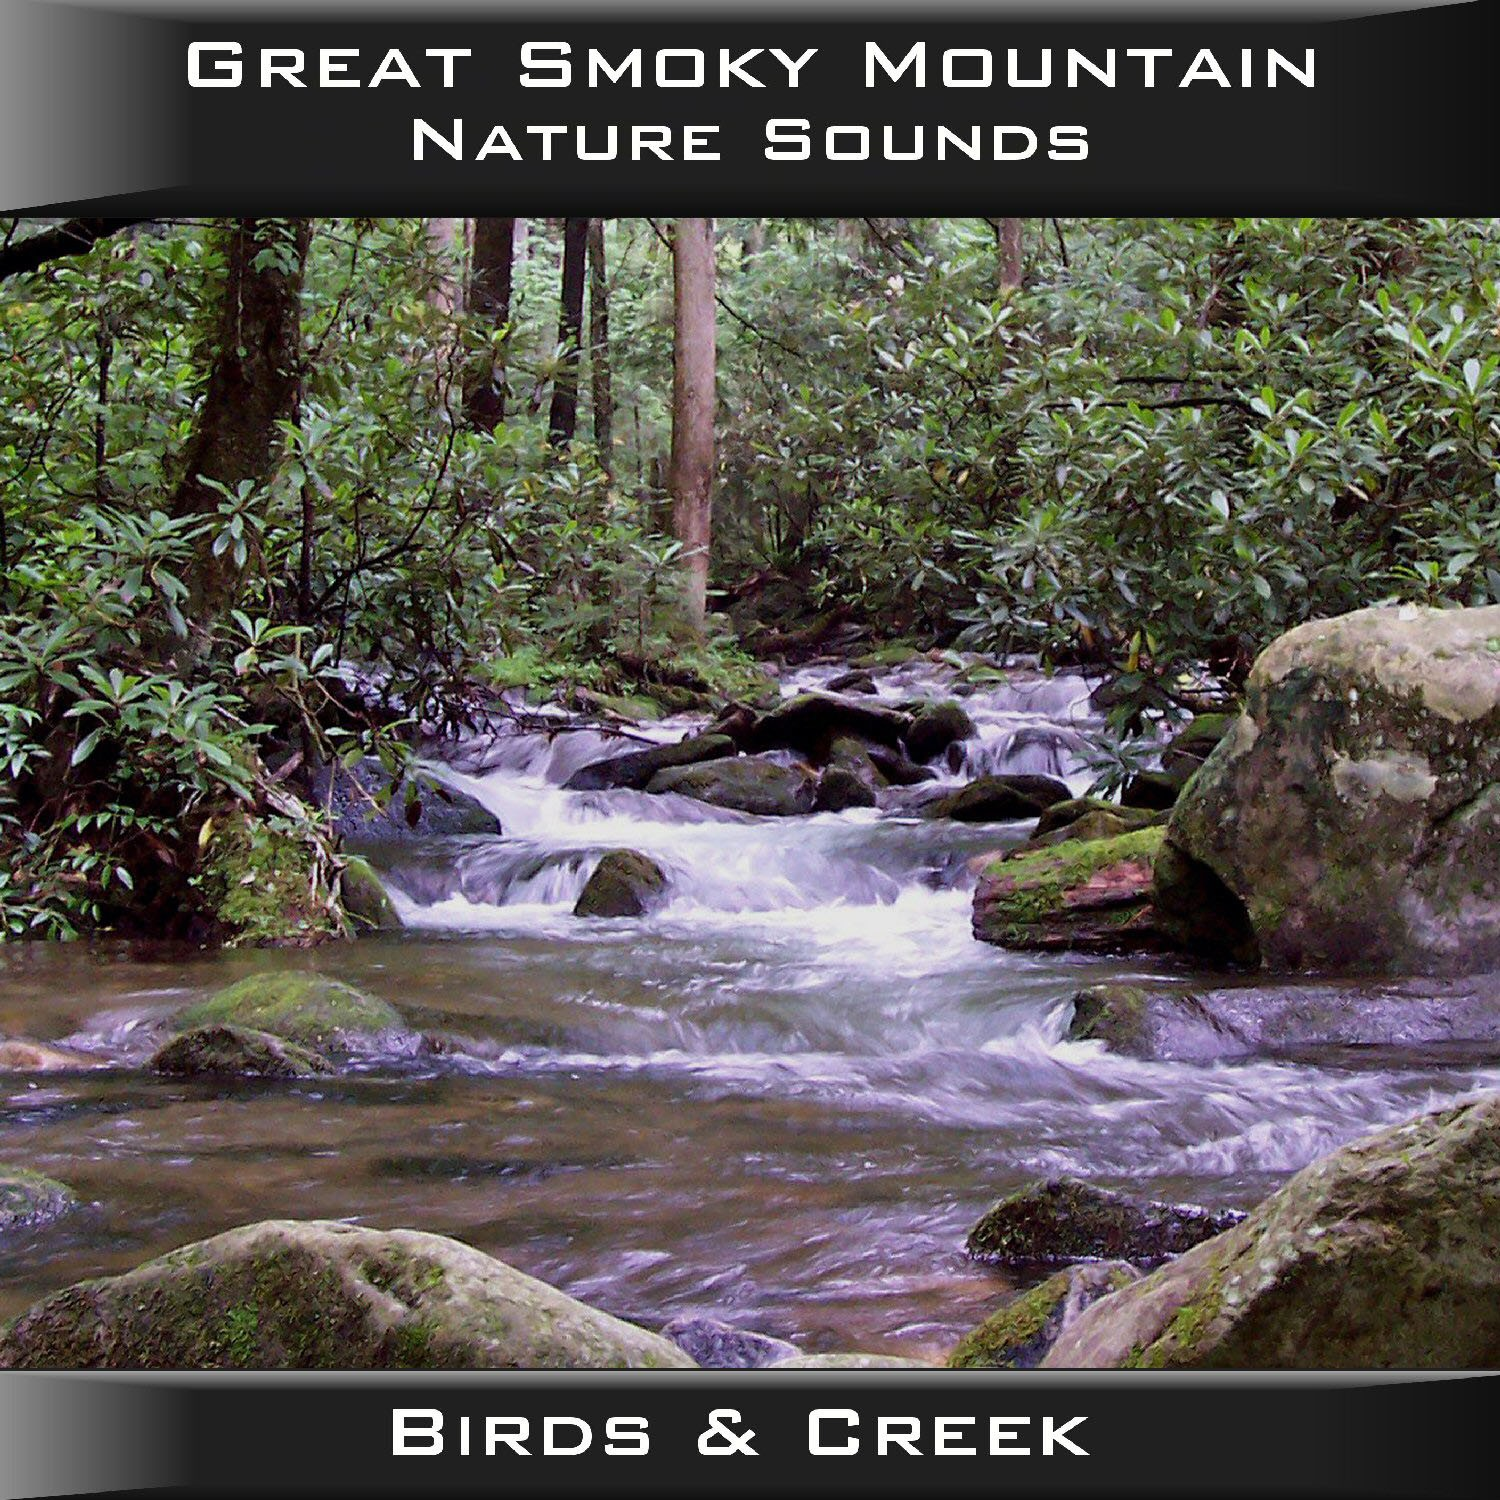 Great Smoky Mountain Birds & Creek CD